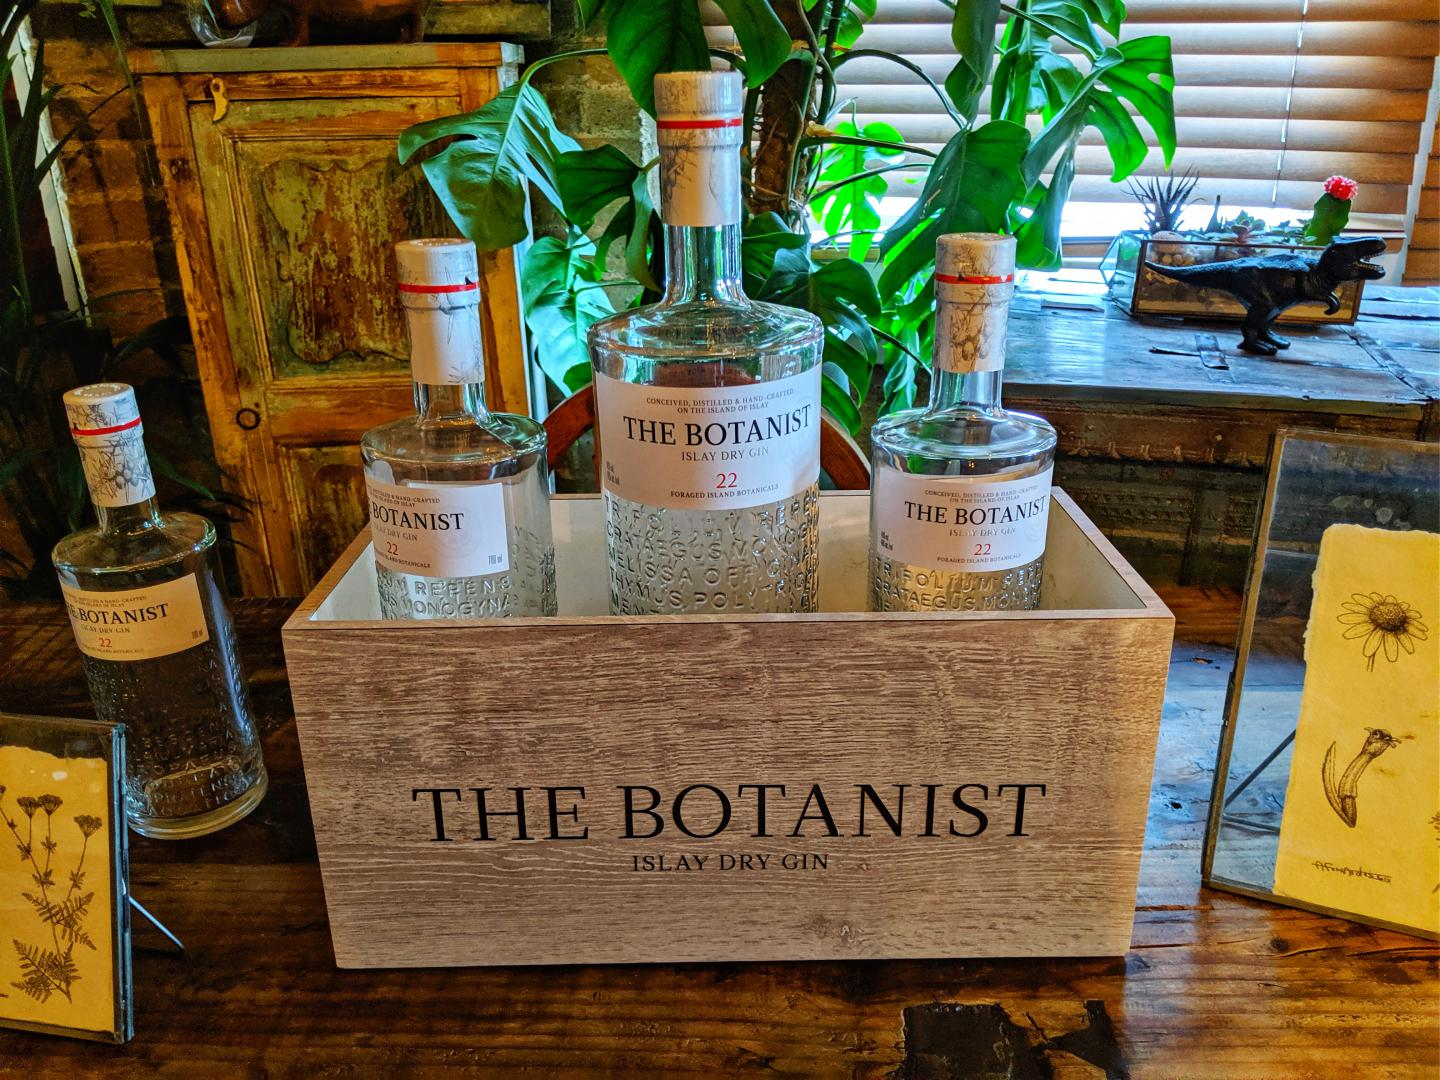 Bottle of Botanist Gin sitting on a table